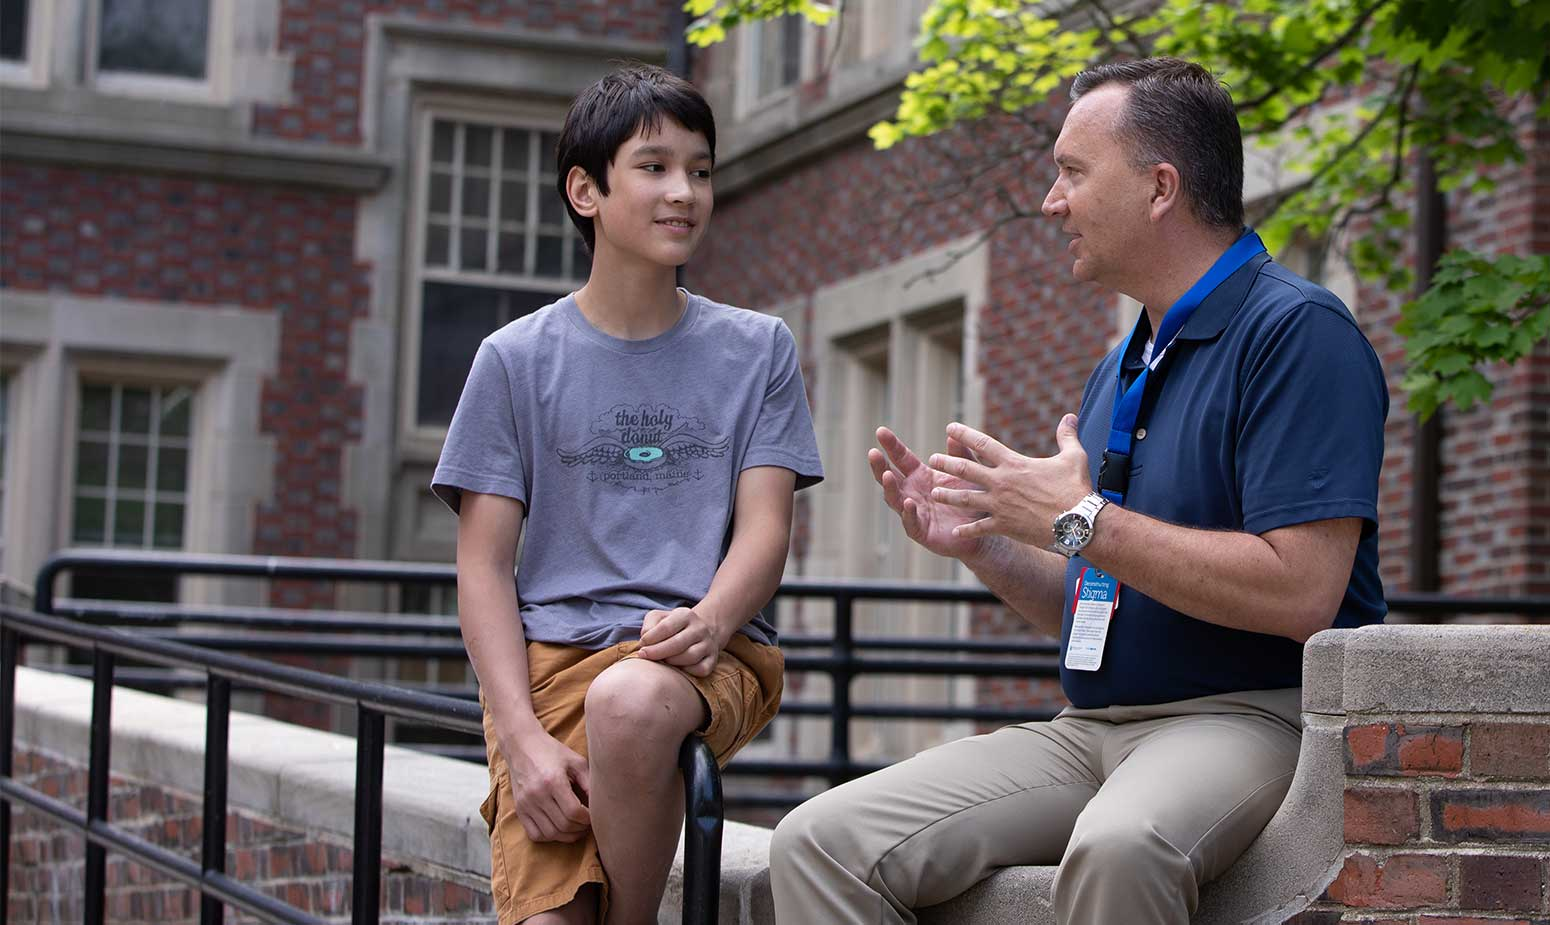 Teen boy speaks with McLean staff